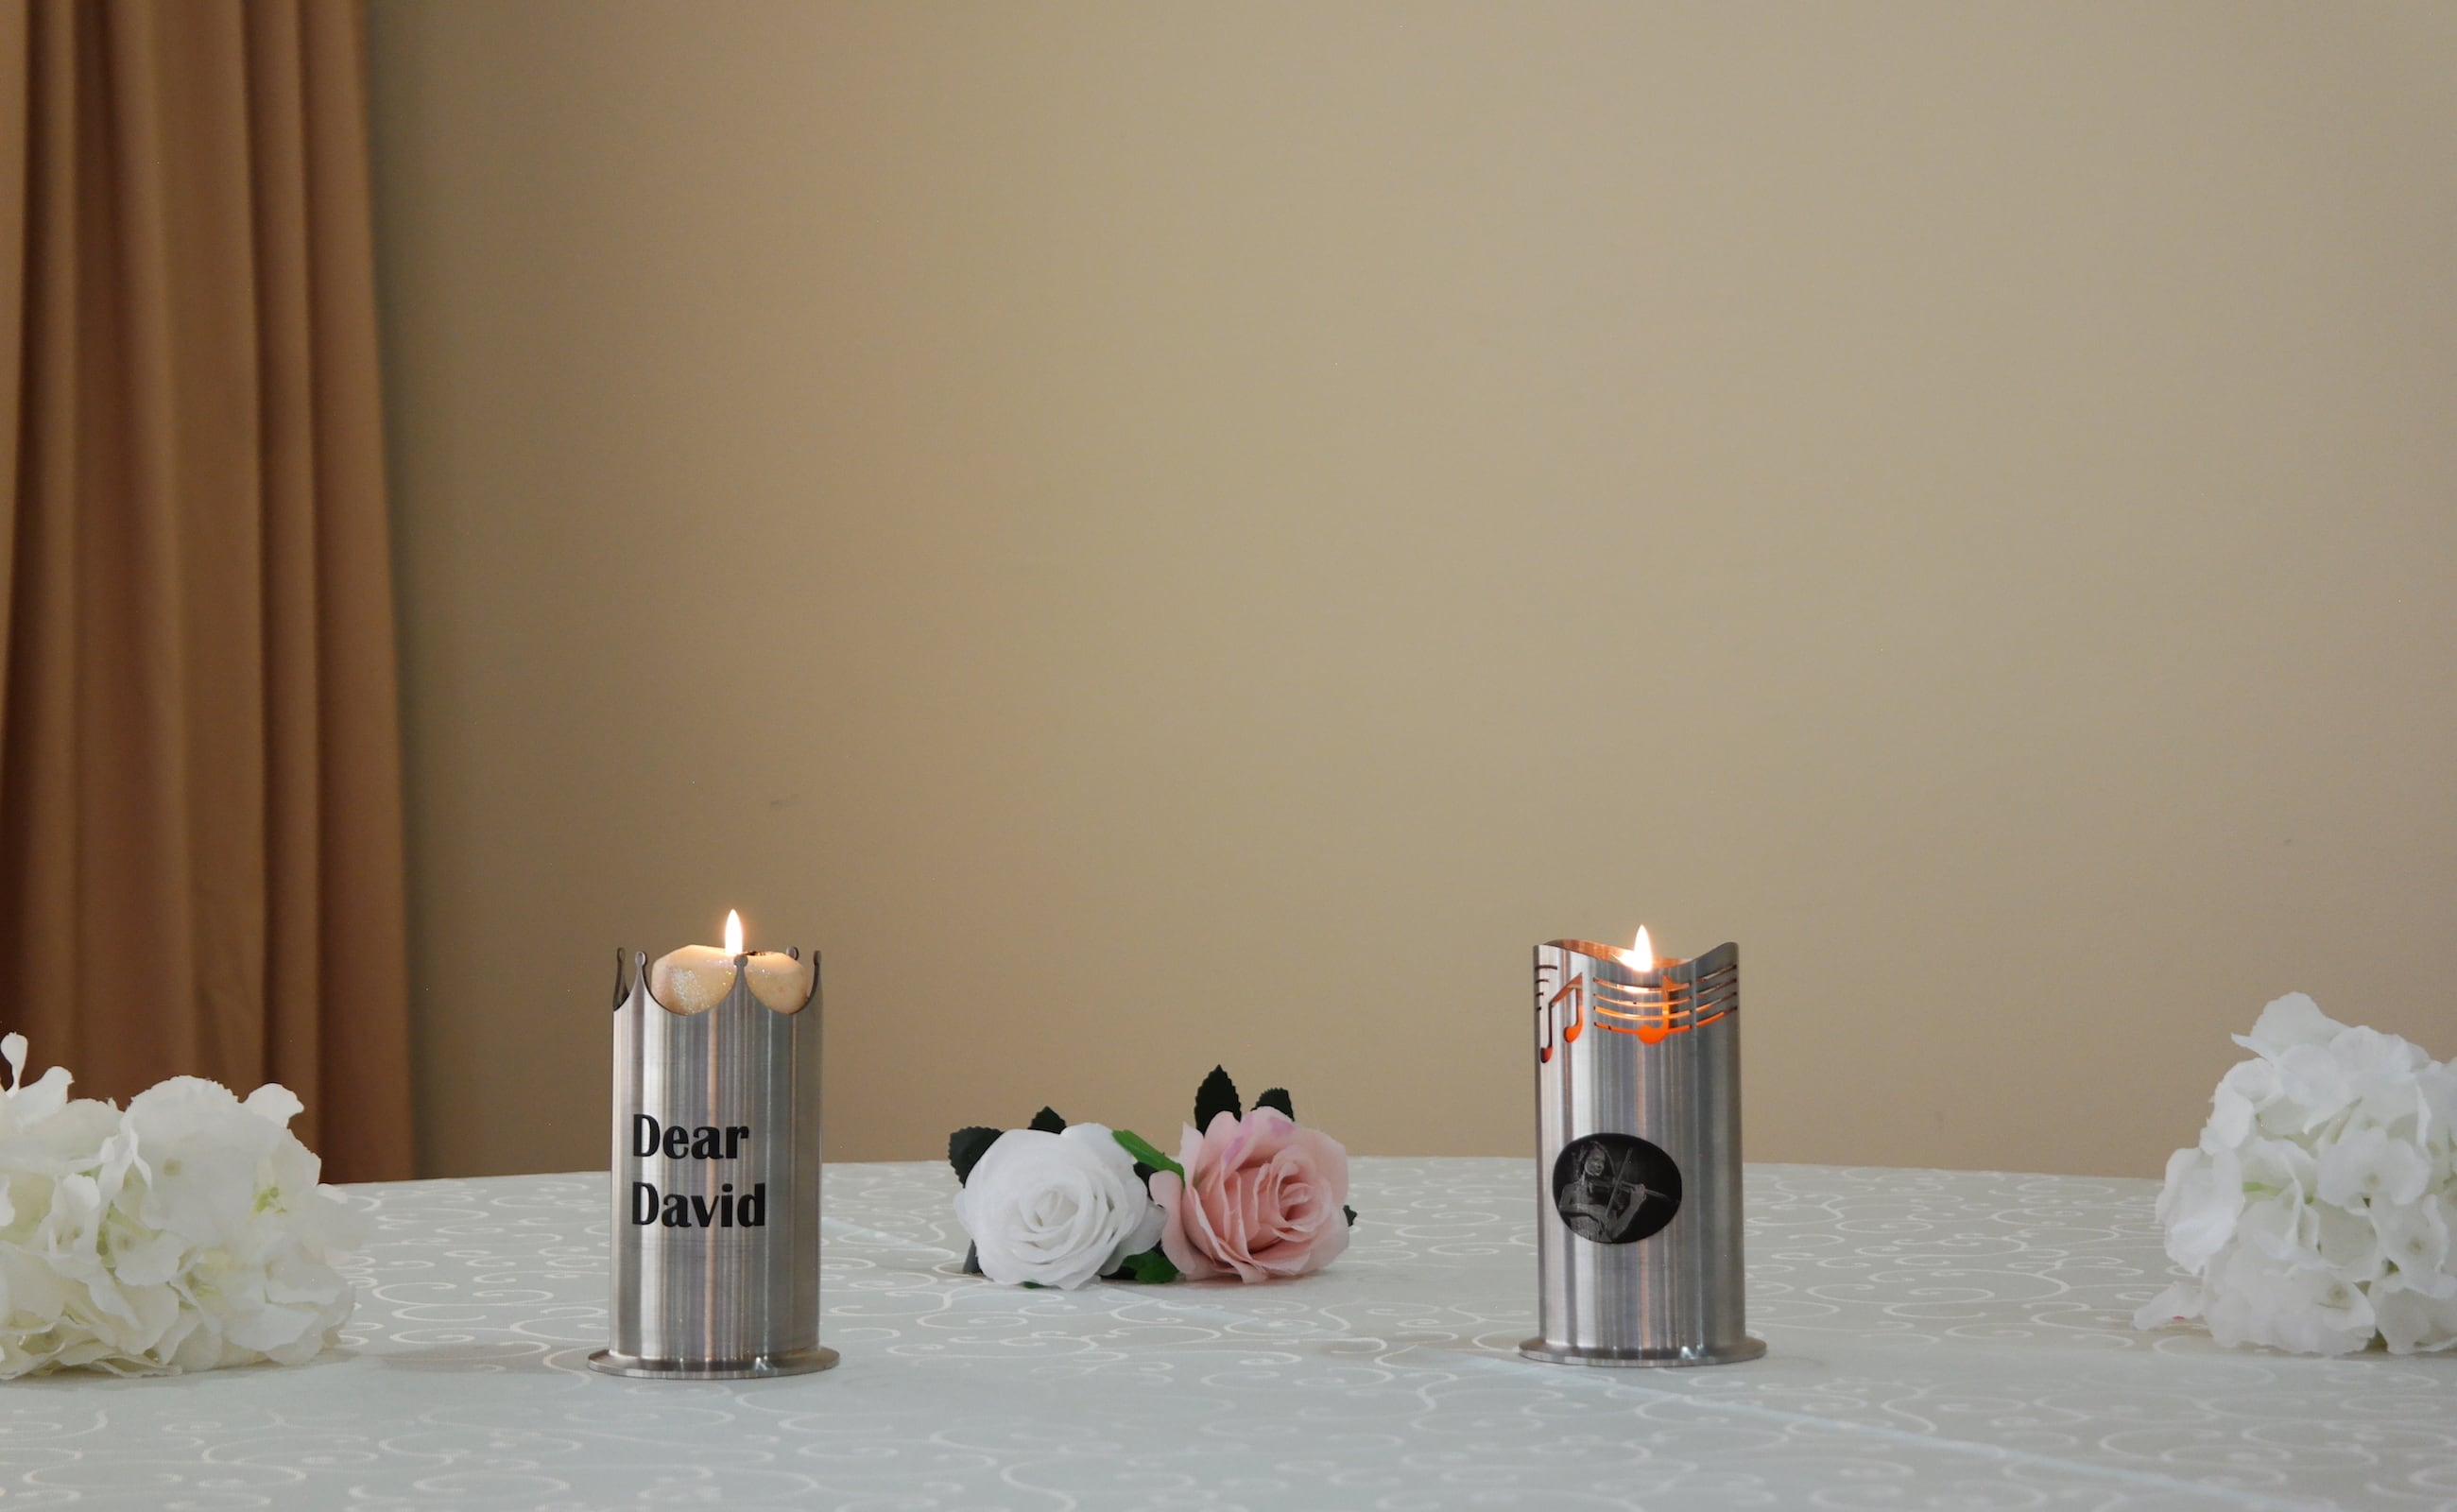 Glorious Flame Level Adjusting Candlestick keeps the flame in sight loading=